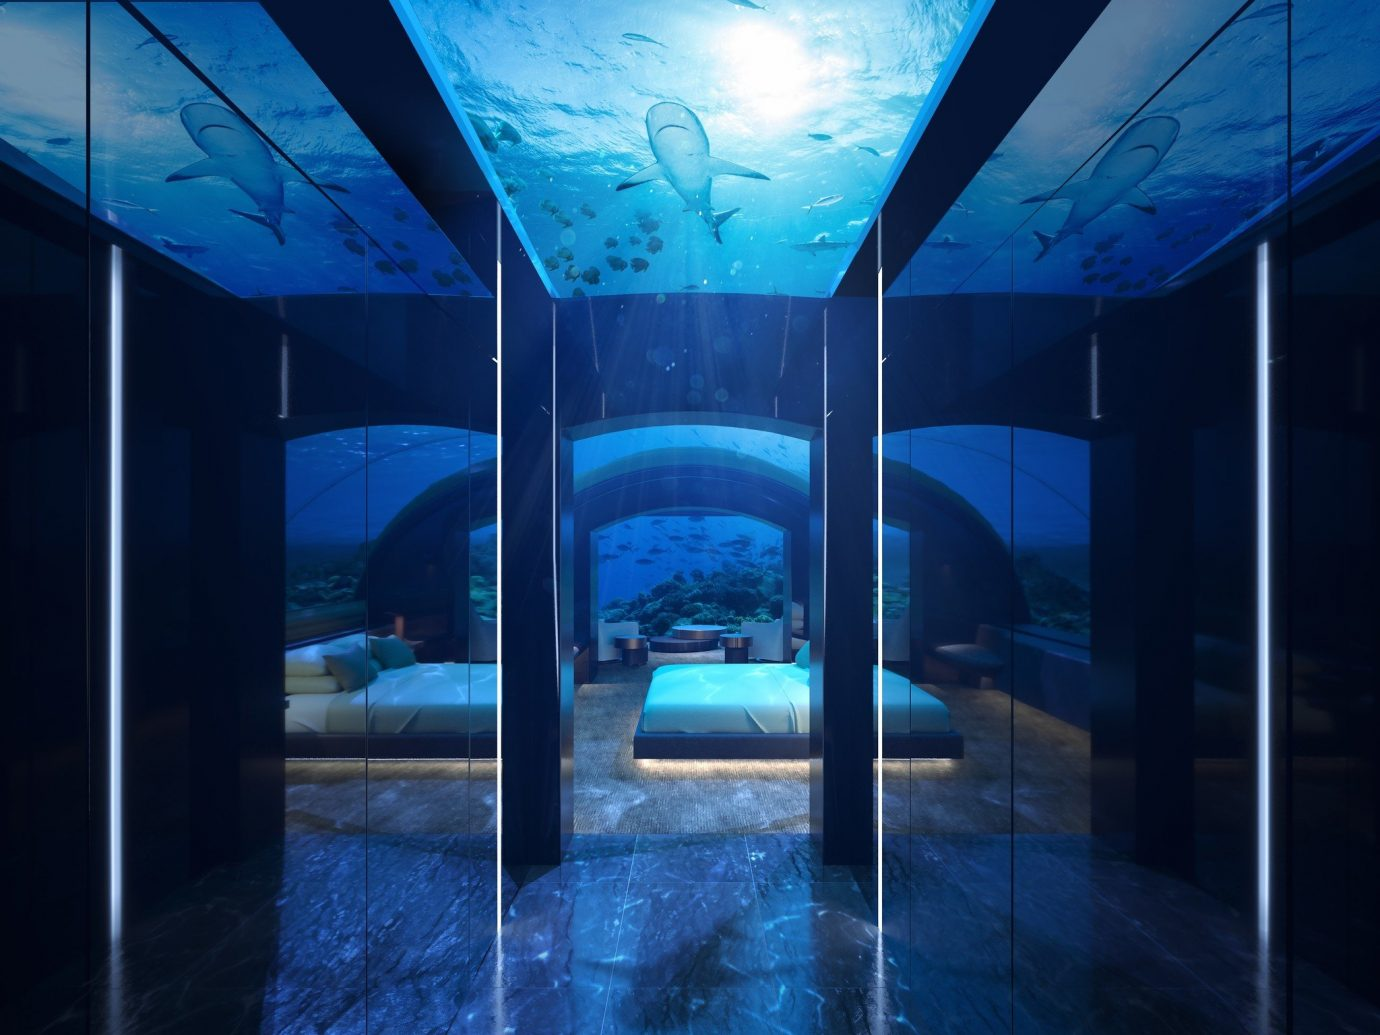 asia Beach Hotels Islands Maldives News blue light Architecture lighting darkness interior design computer wallpaper glass